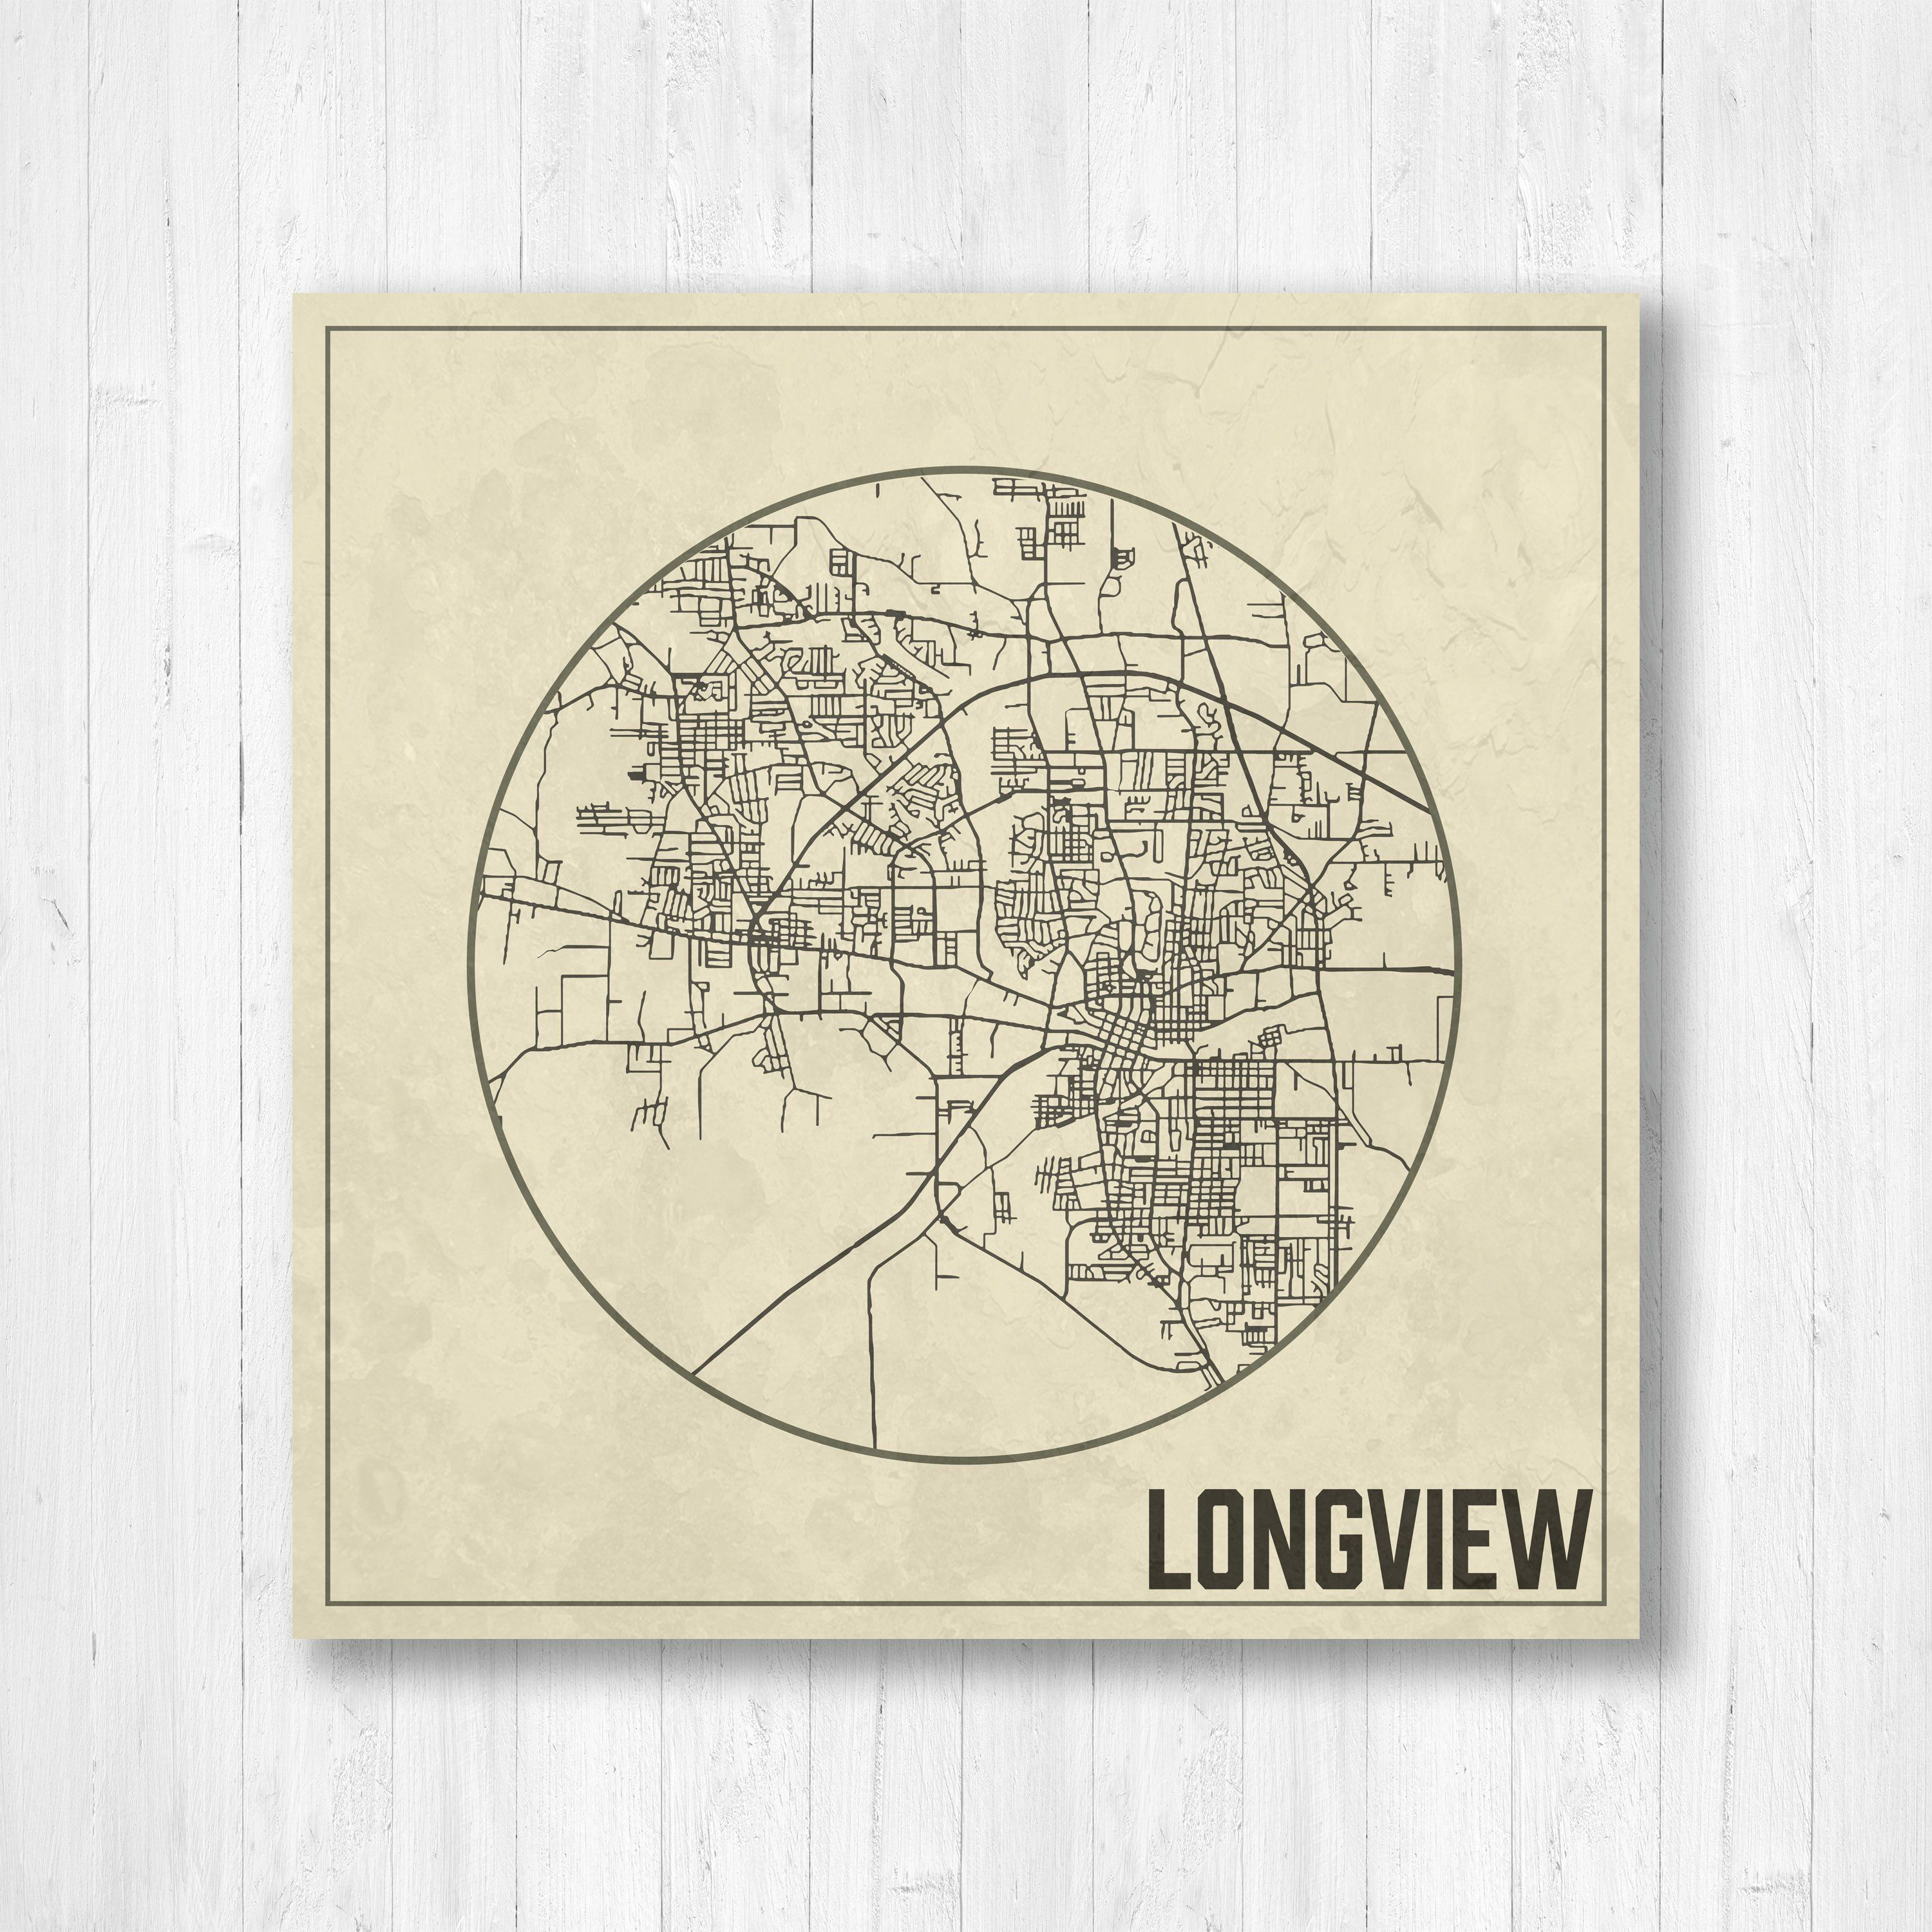 Map Of Texas Longview.Longview Texas Longview City Map Map With Streets Weathered Map